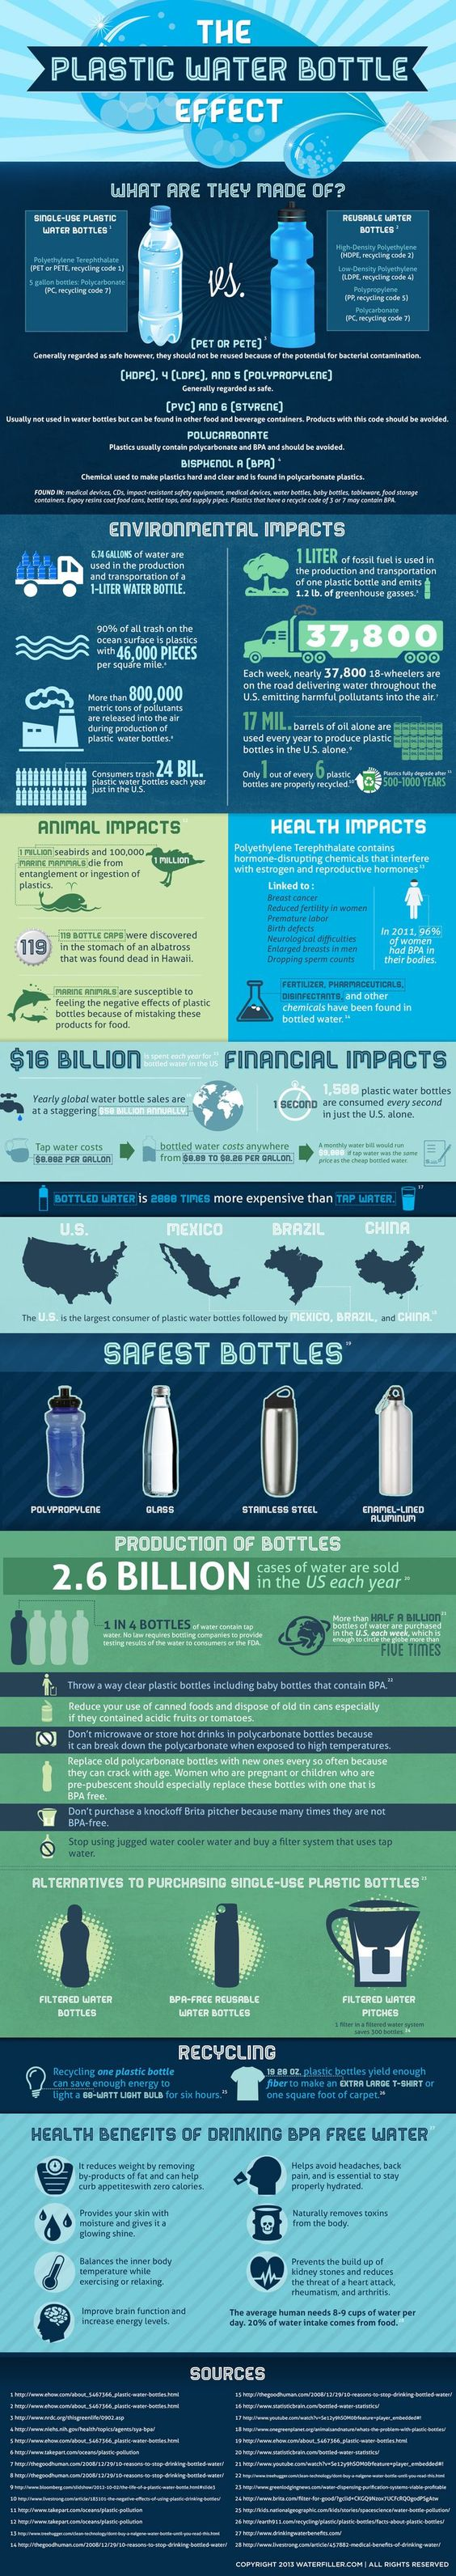 Pulled from Pinterest. Infographic from waterfiller.com